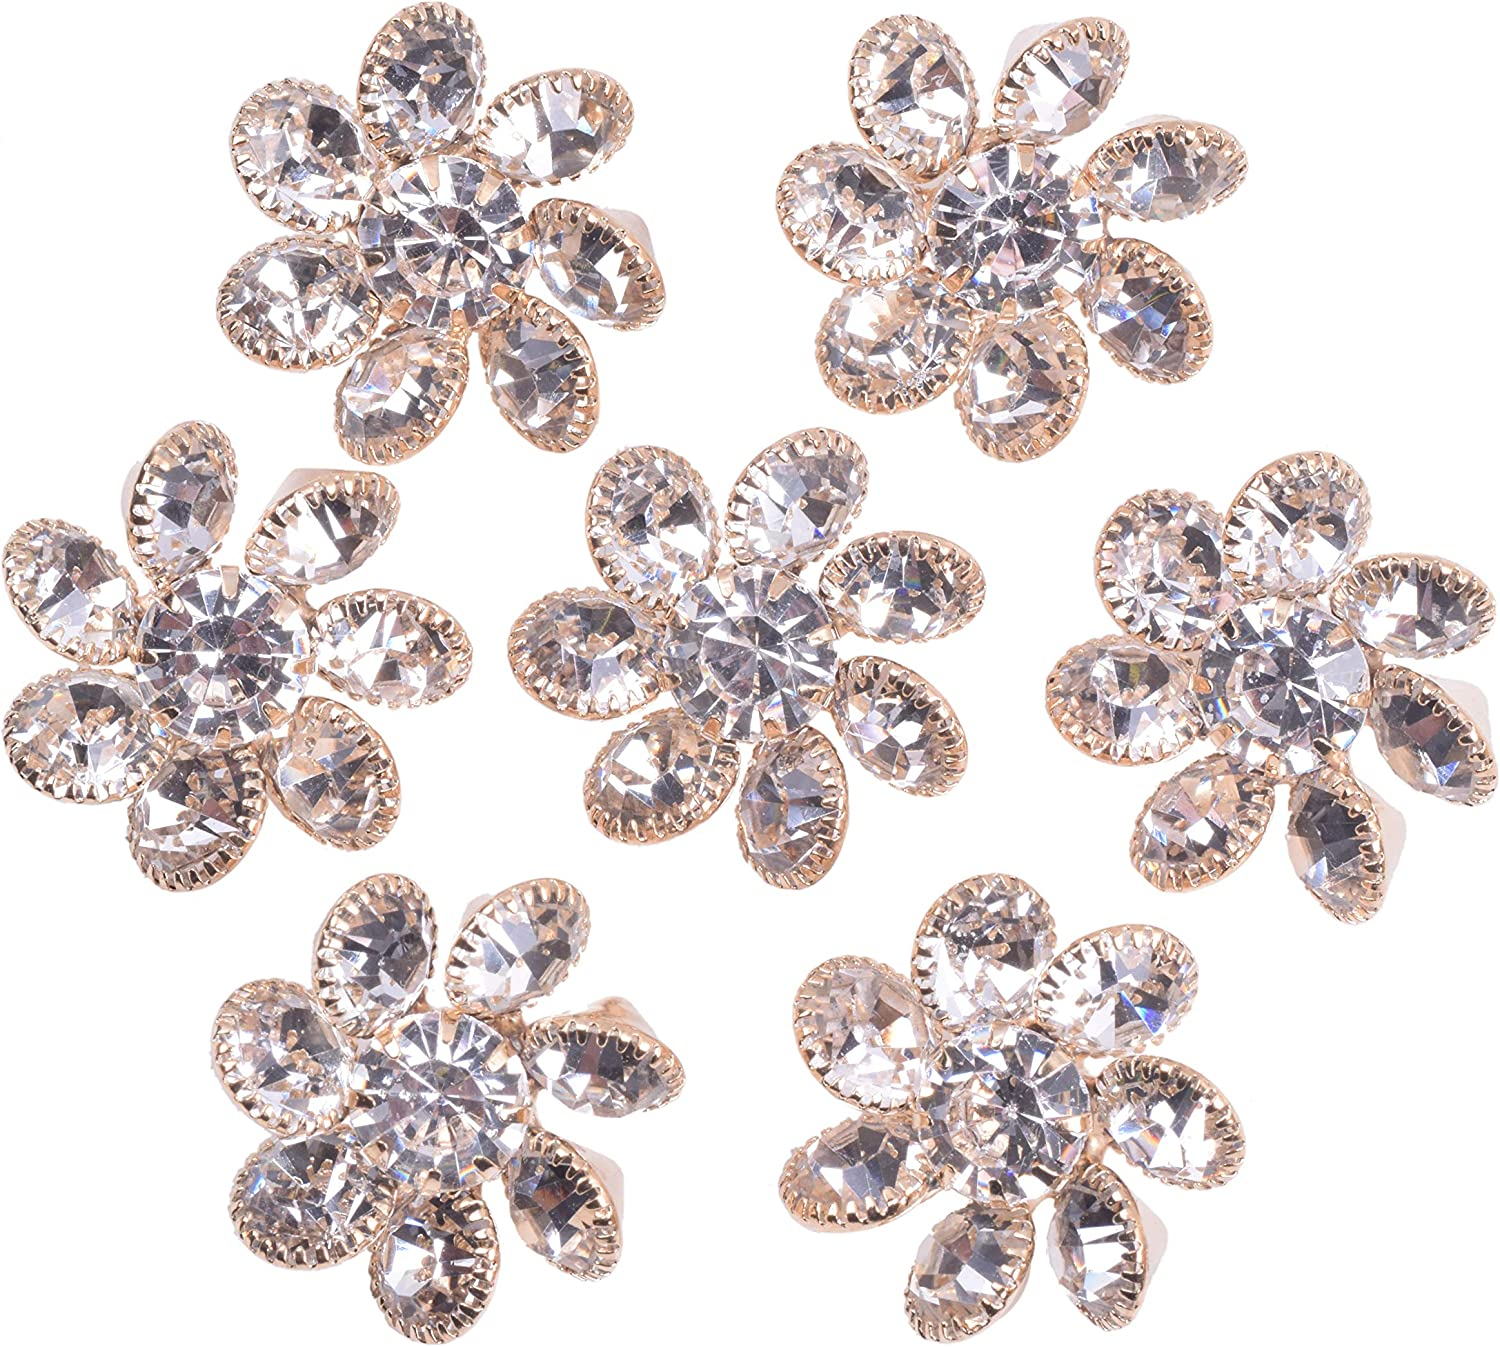 KAOYOO 10PCS Metal Crystal Rhinestone Golden Max 54% OFF Topics on TV Buttons Platin with